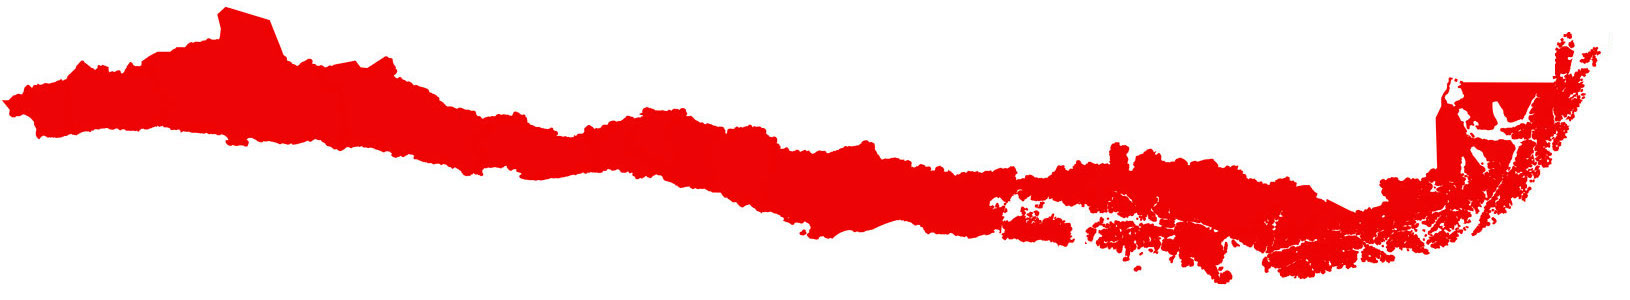 red chile map